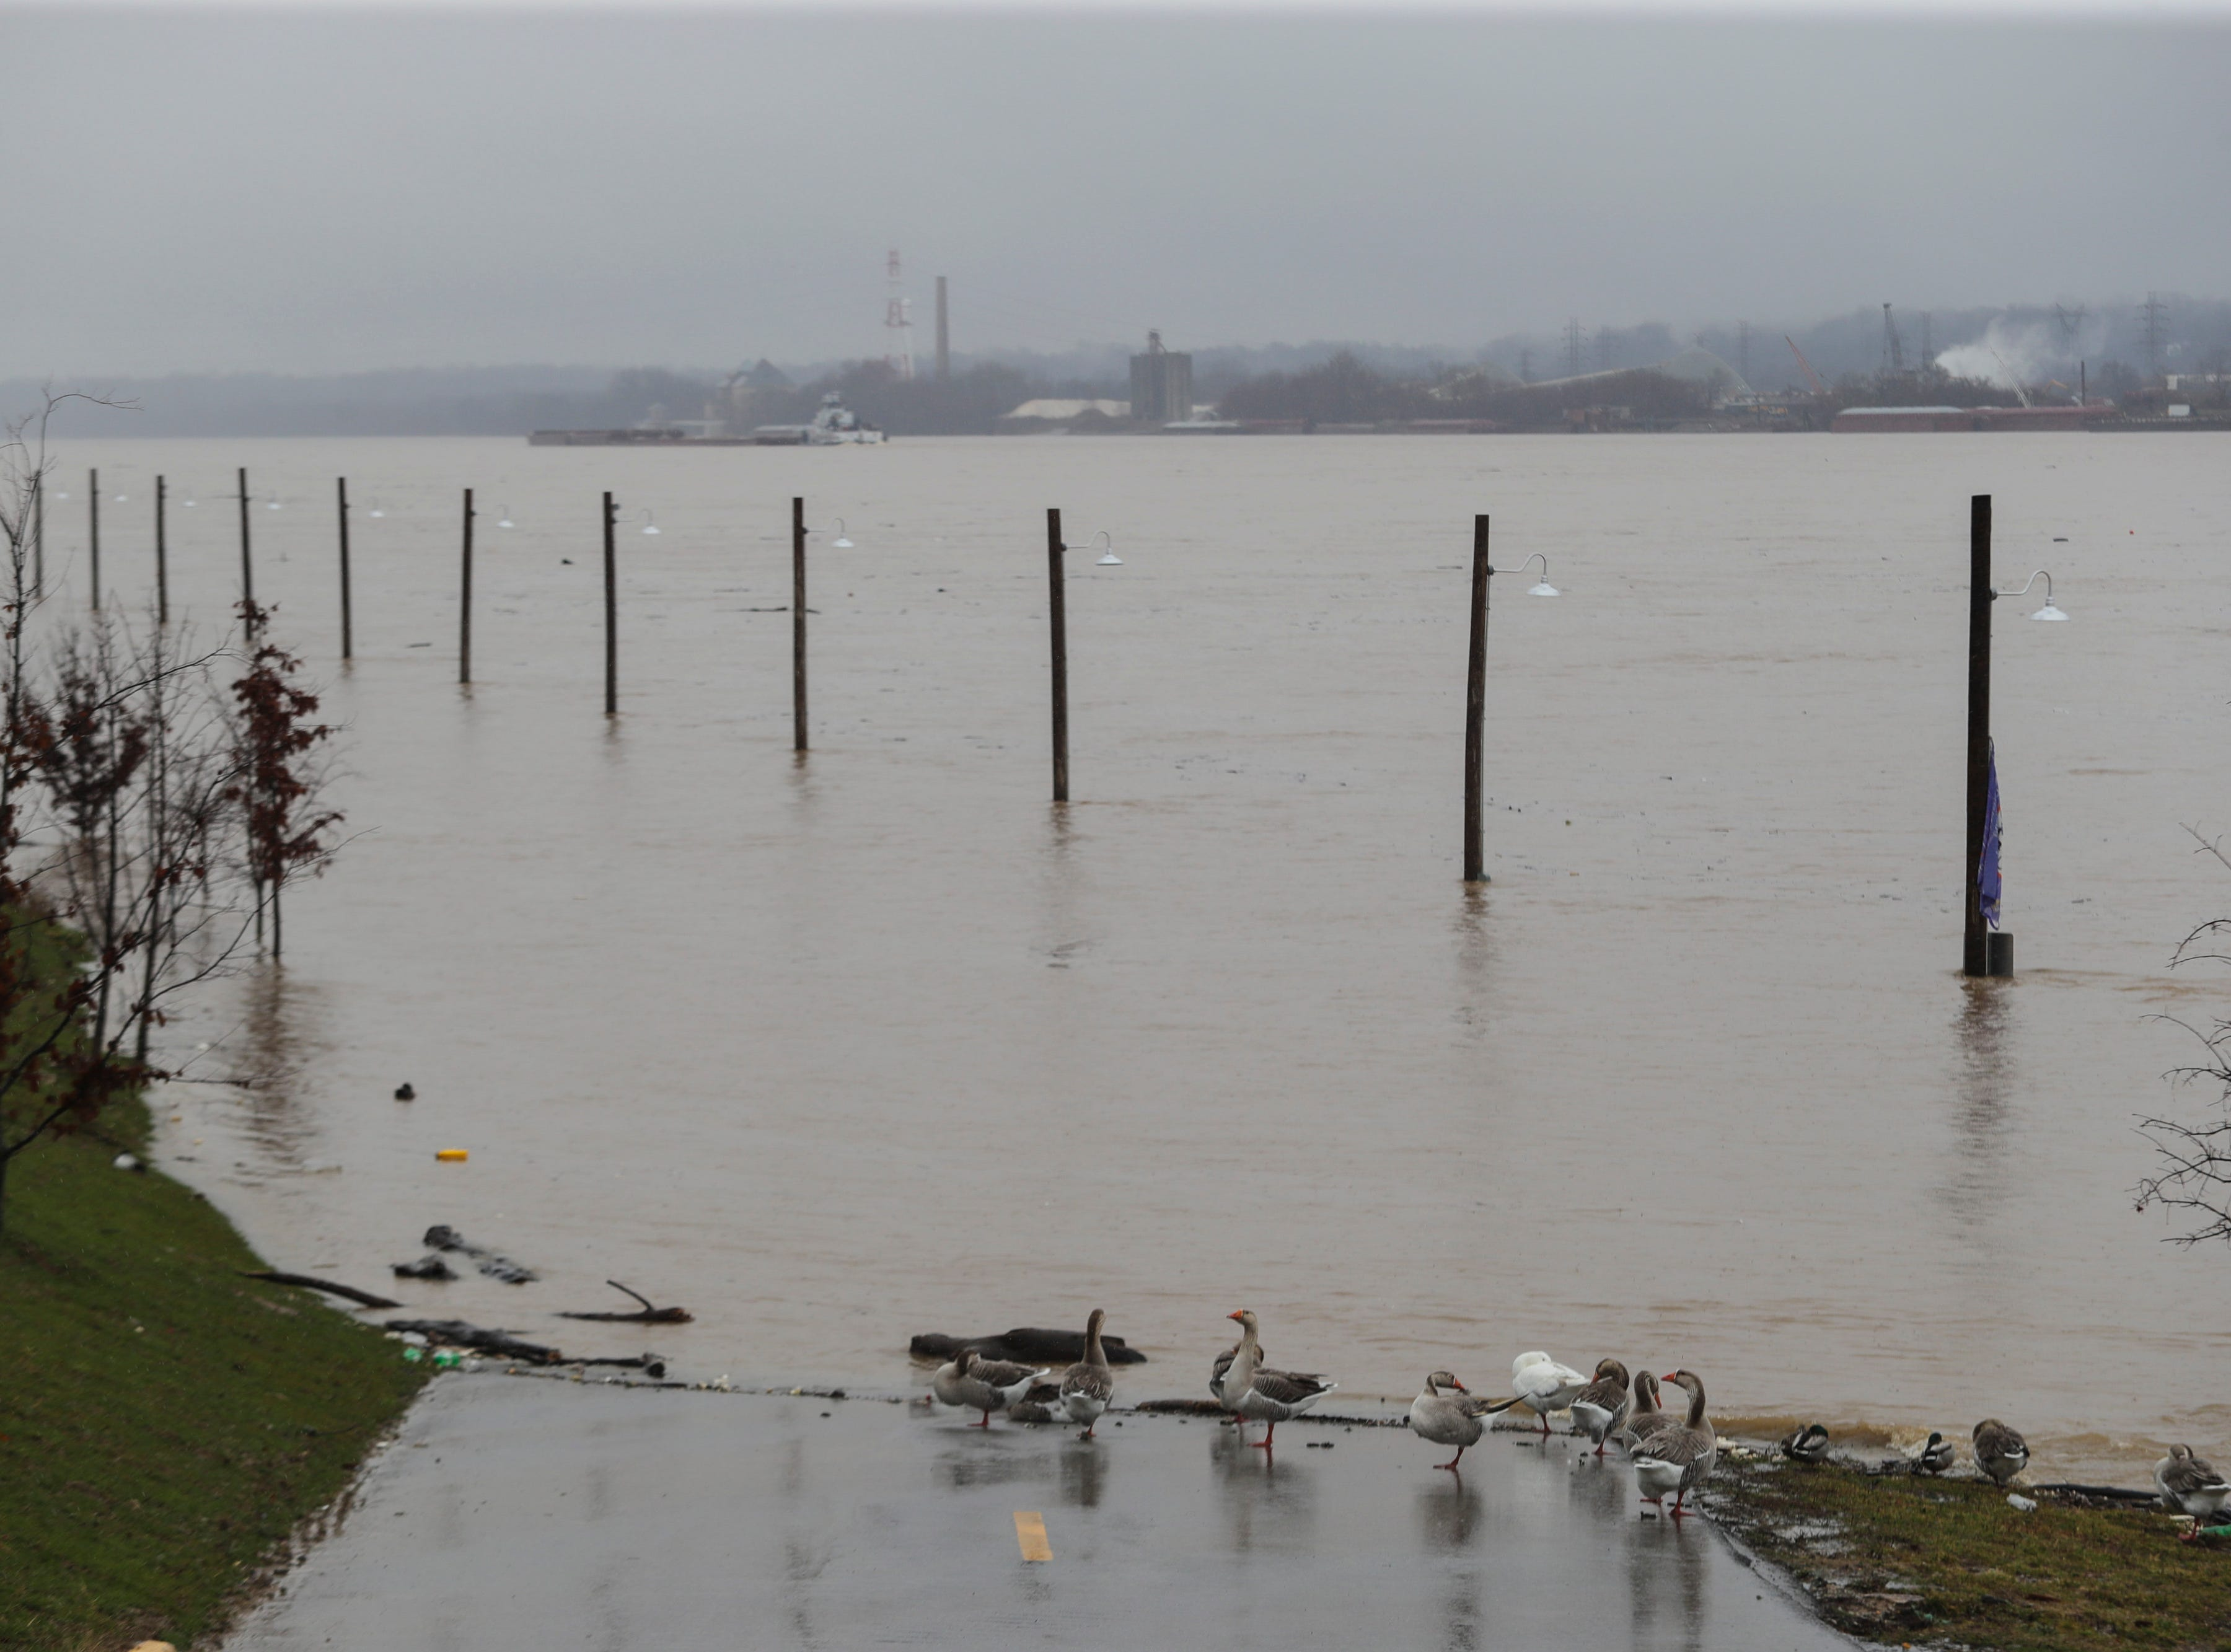 Ducks meander along the bank in Utica, Ind. as Ohio River water levels begin to rise. Feb. 11, 2019